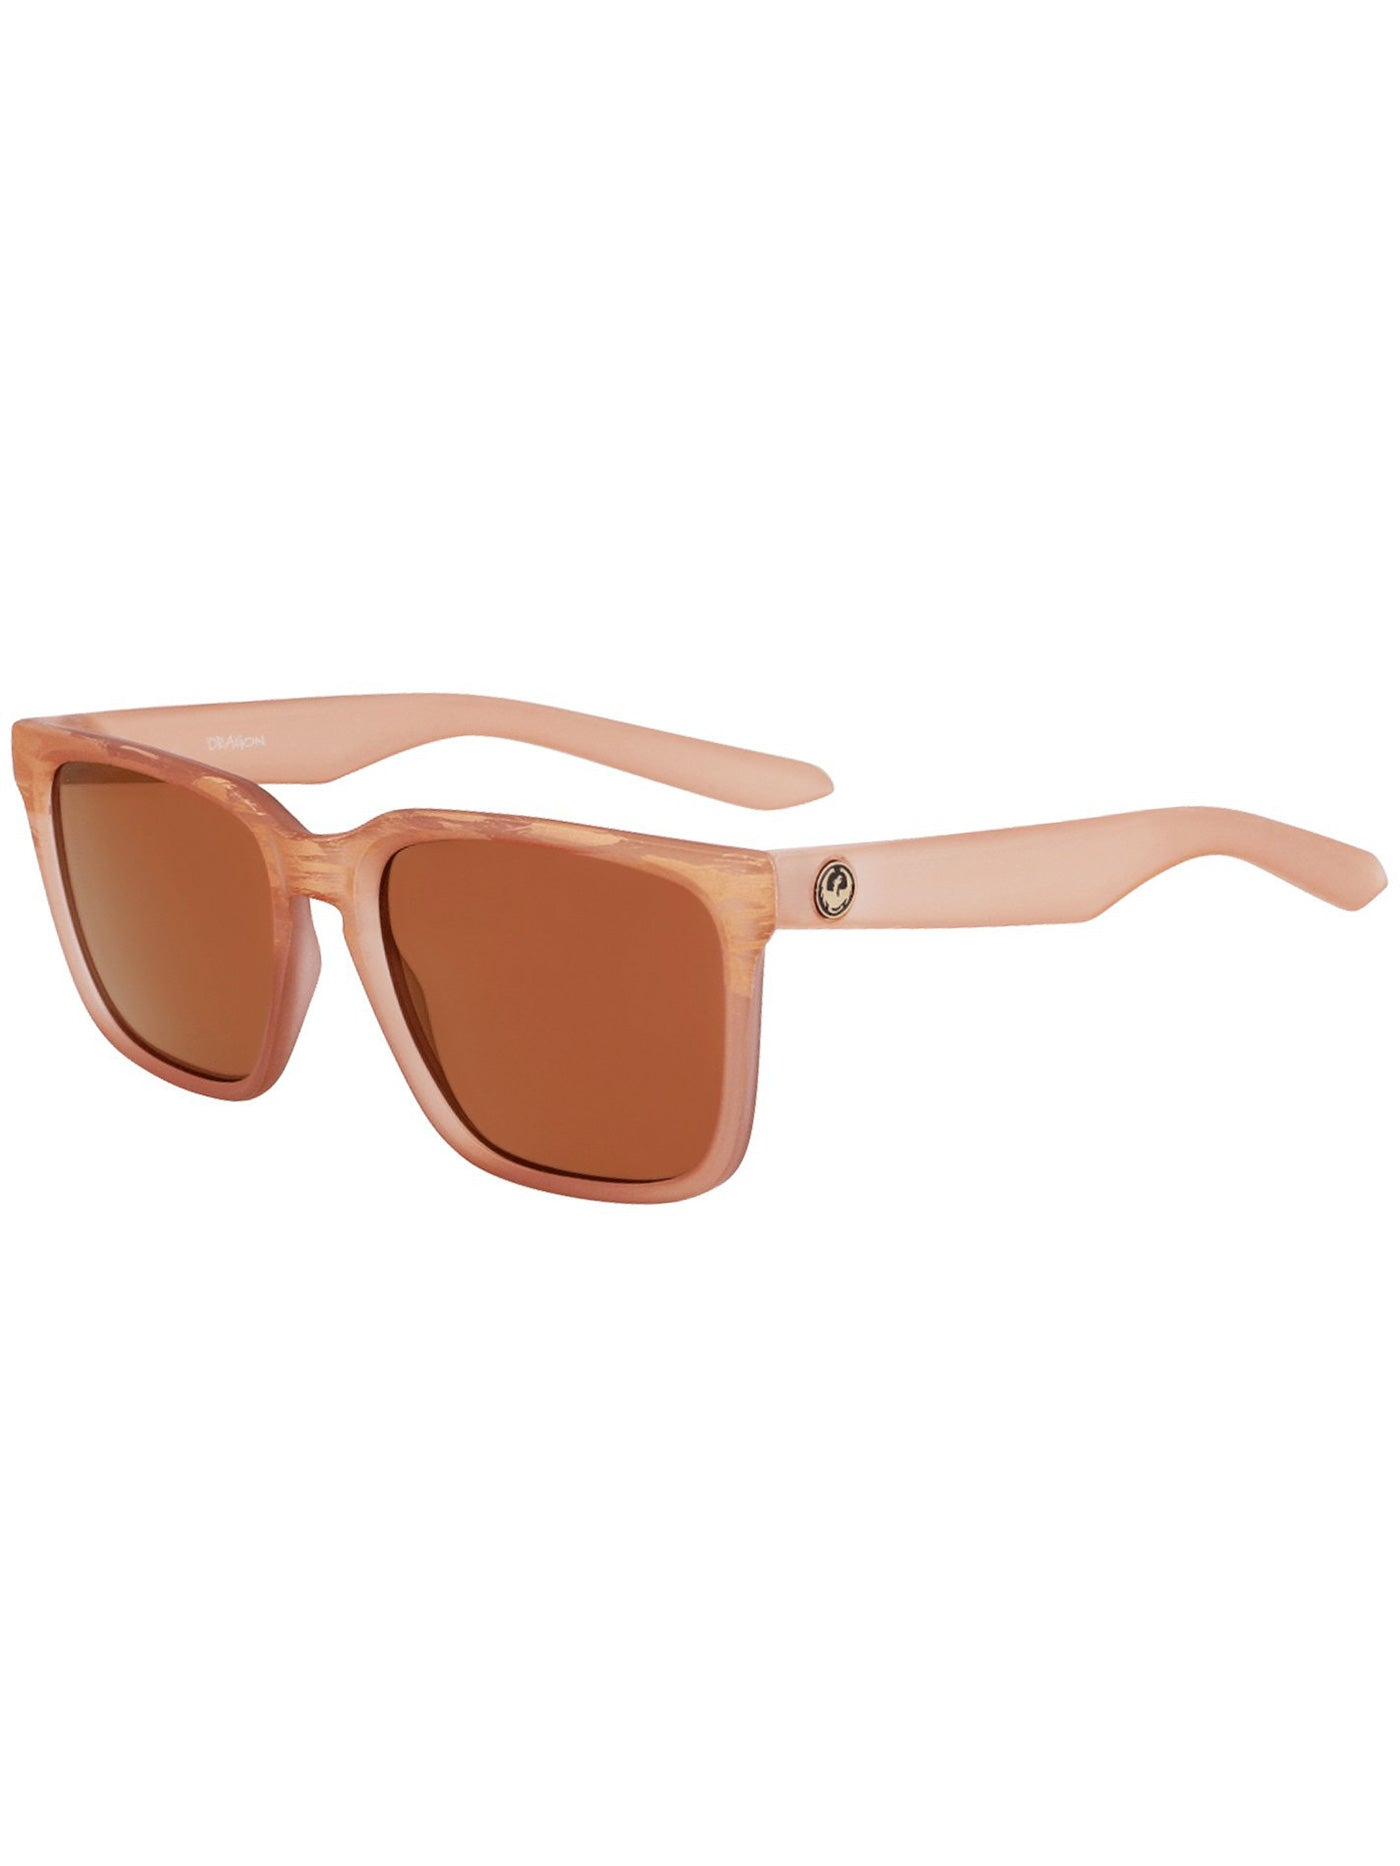 ROSEWOOD/LL ROSE COPP ION